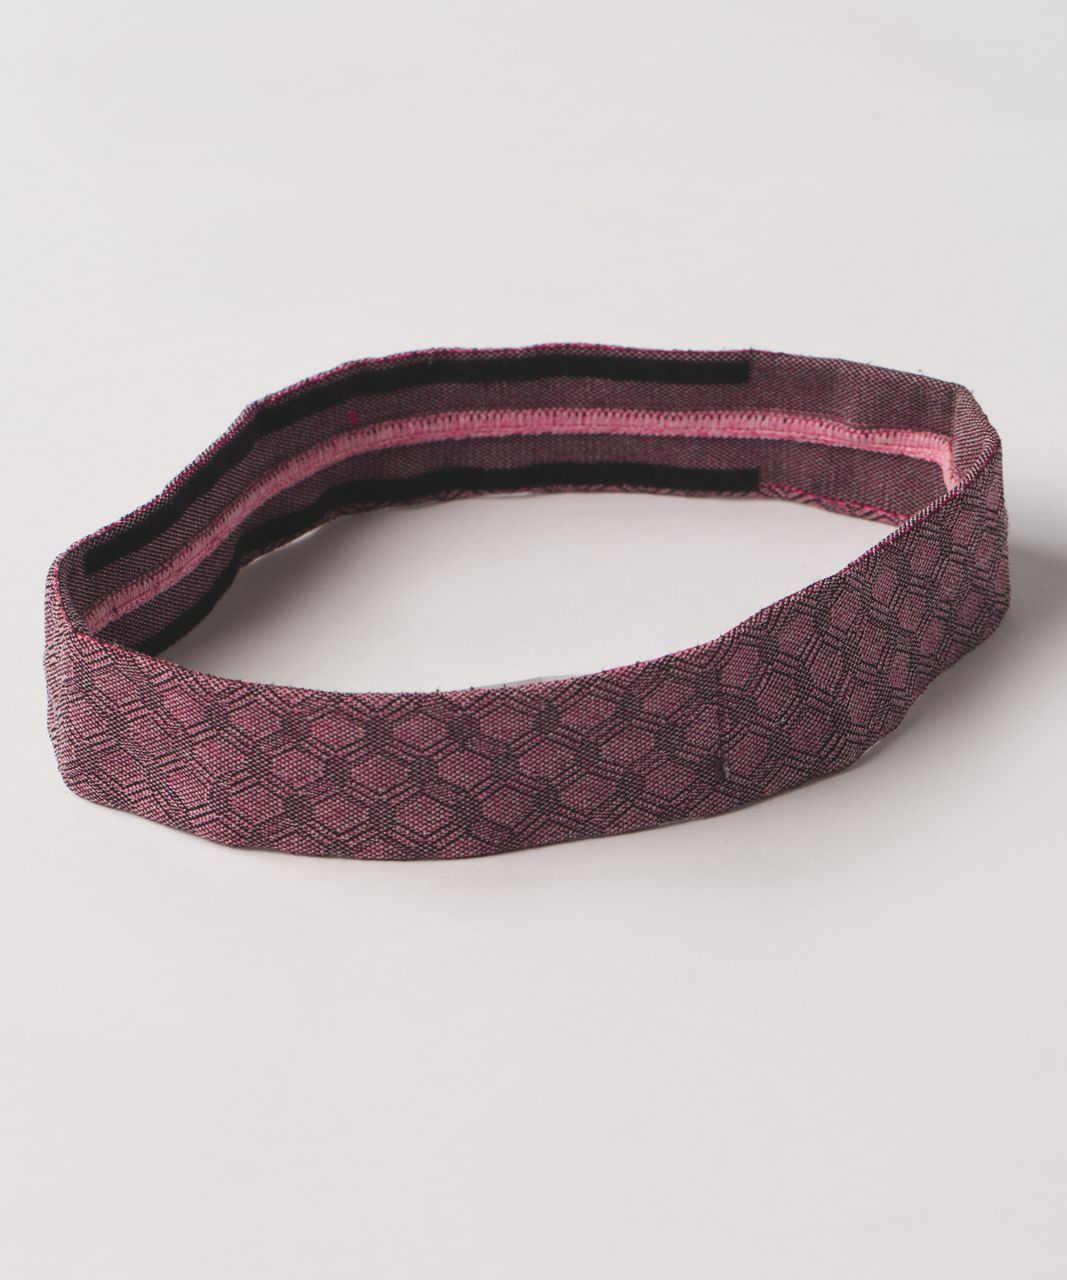 Lululemon Cardio Cross Trainer Headband - Heathered Jewelled Magenta (Print)